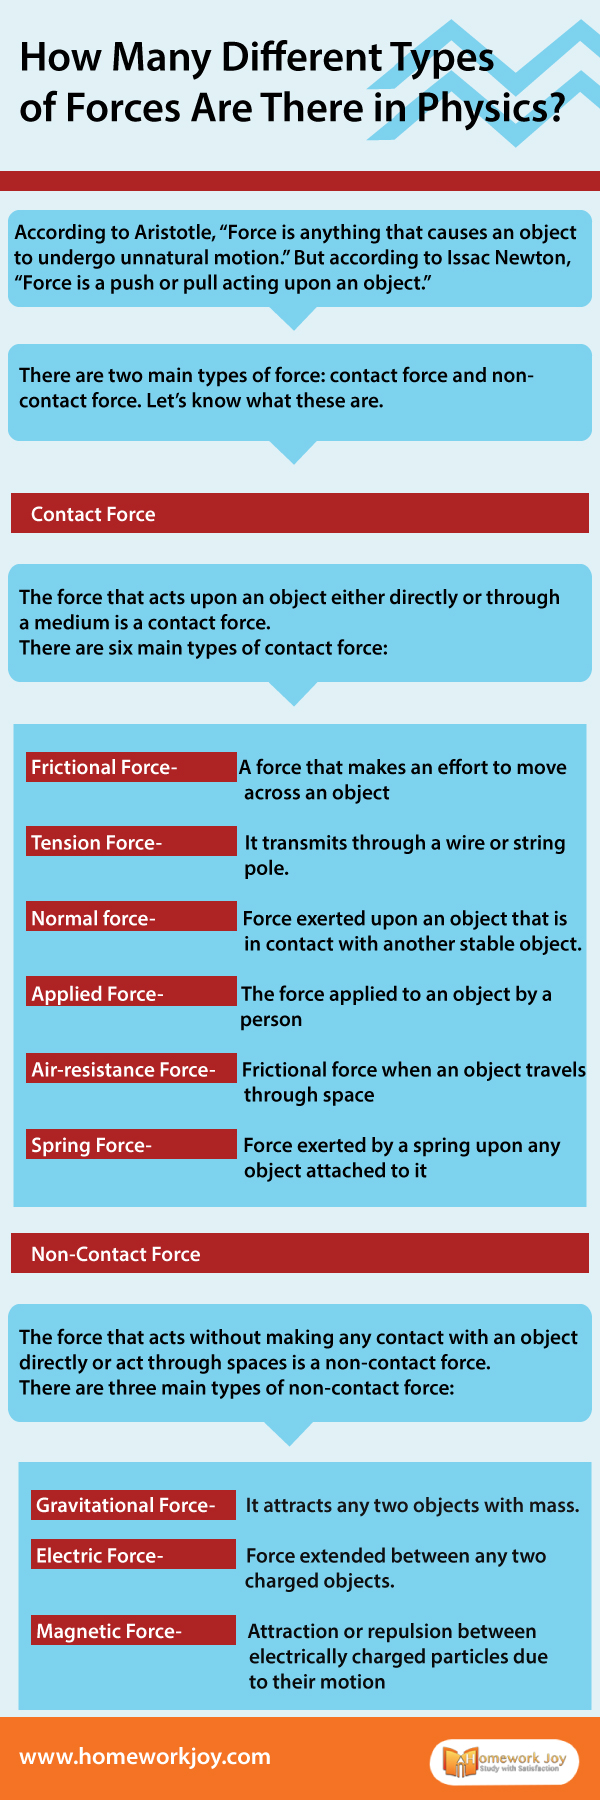 How Many Different Types of Forces Are There in Physics